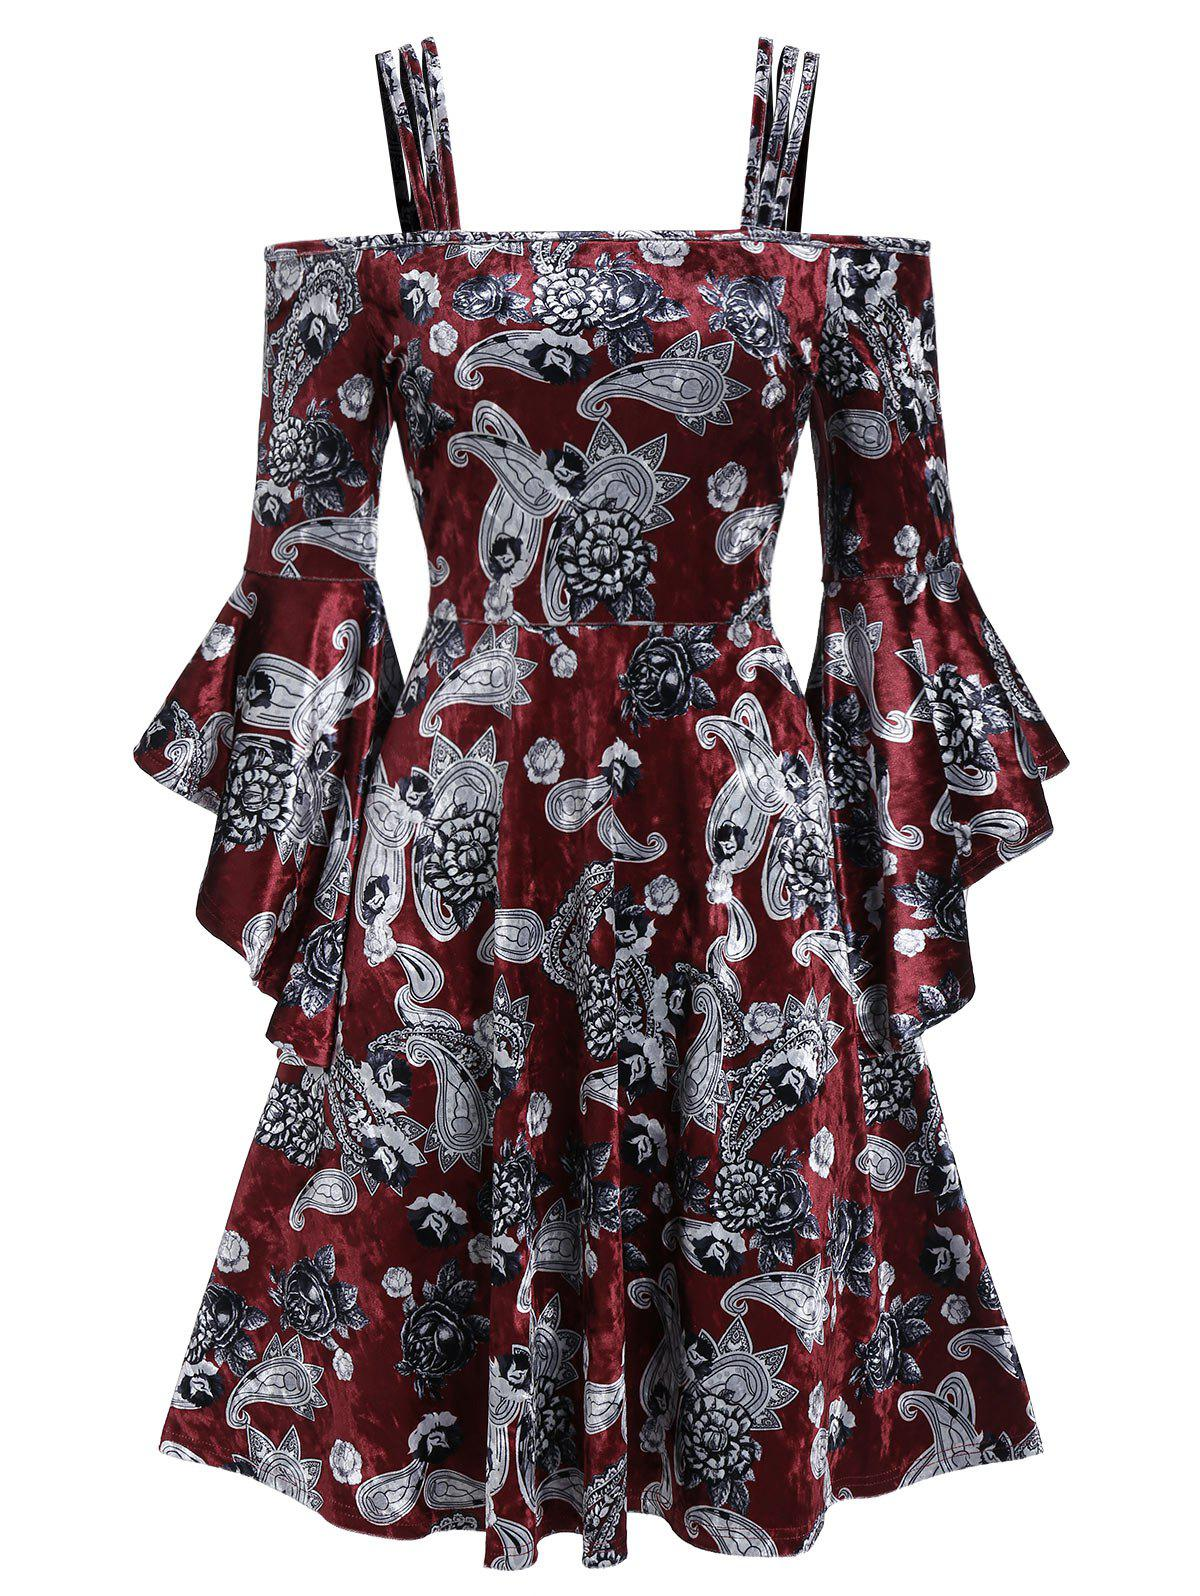 Open Shoulder Floral Print Spaghetti Strap Dress - RED WINE M